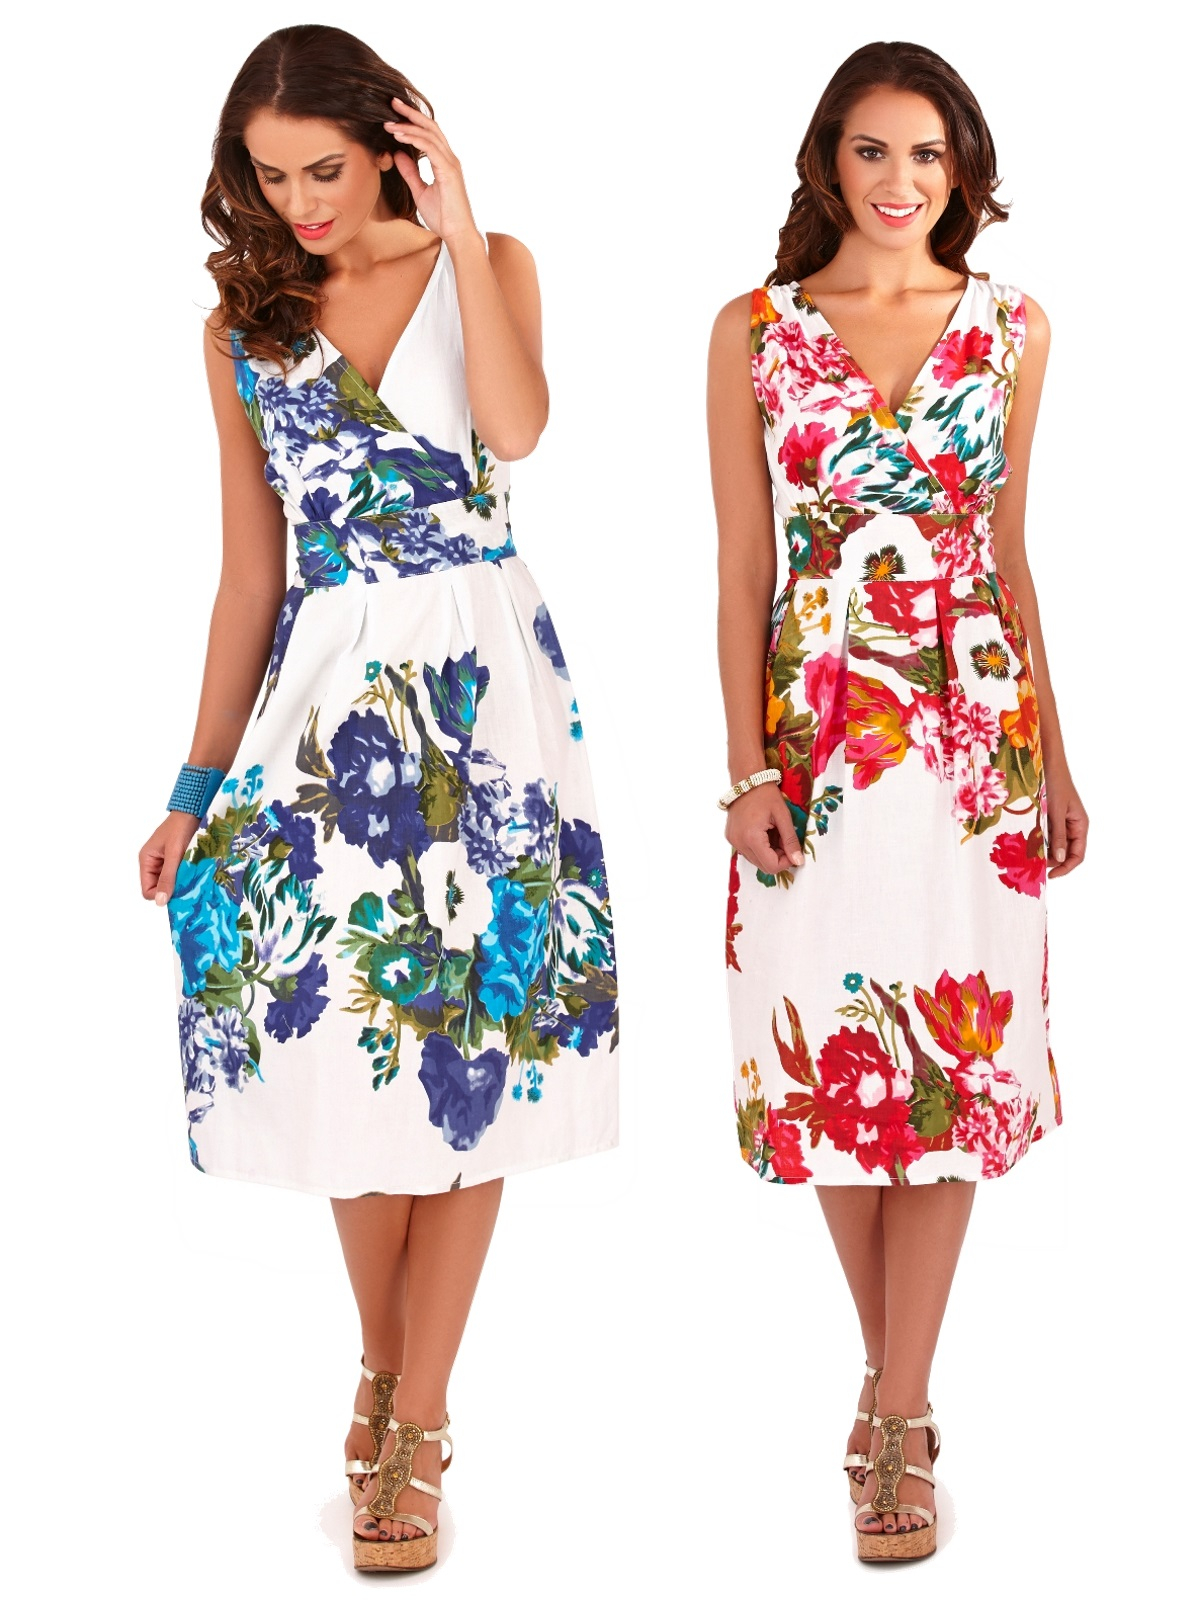 Find stylish misses dresses and maxi dresses at dressbarn. Discover your perfect fit in DRESSBAR's collection of misses, plus size, and petite dresses!